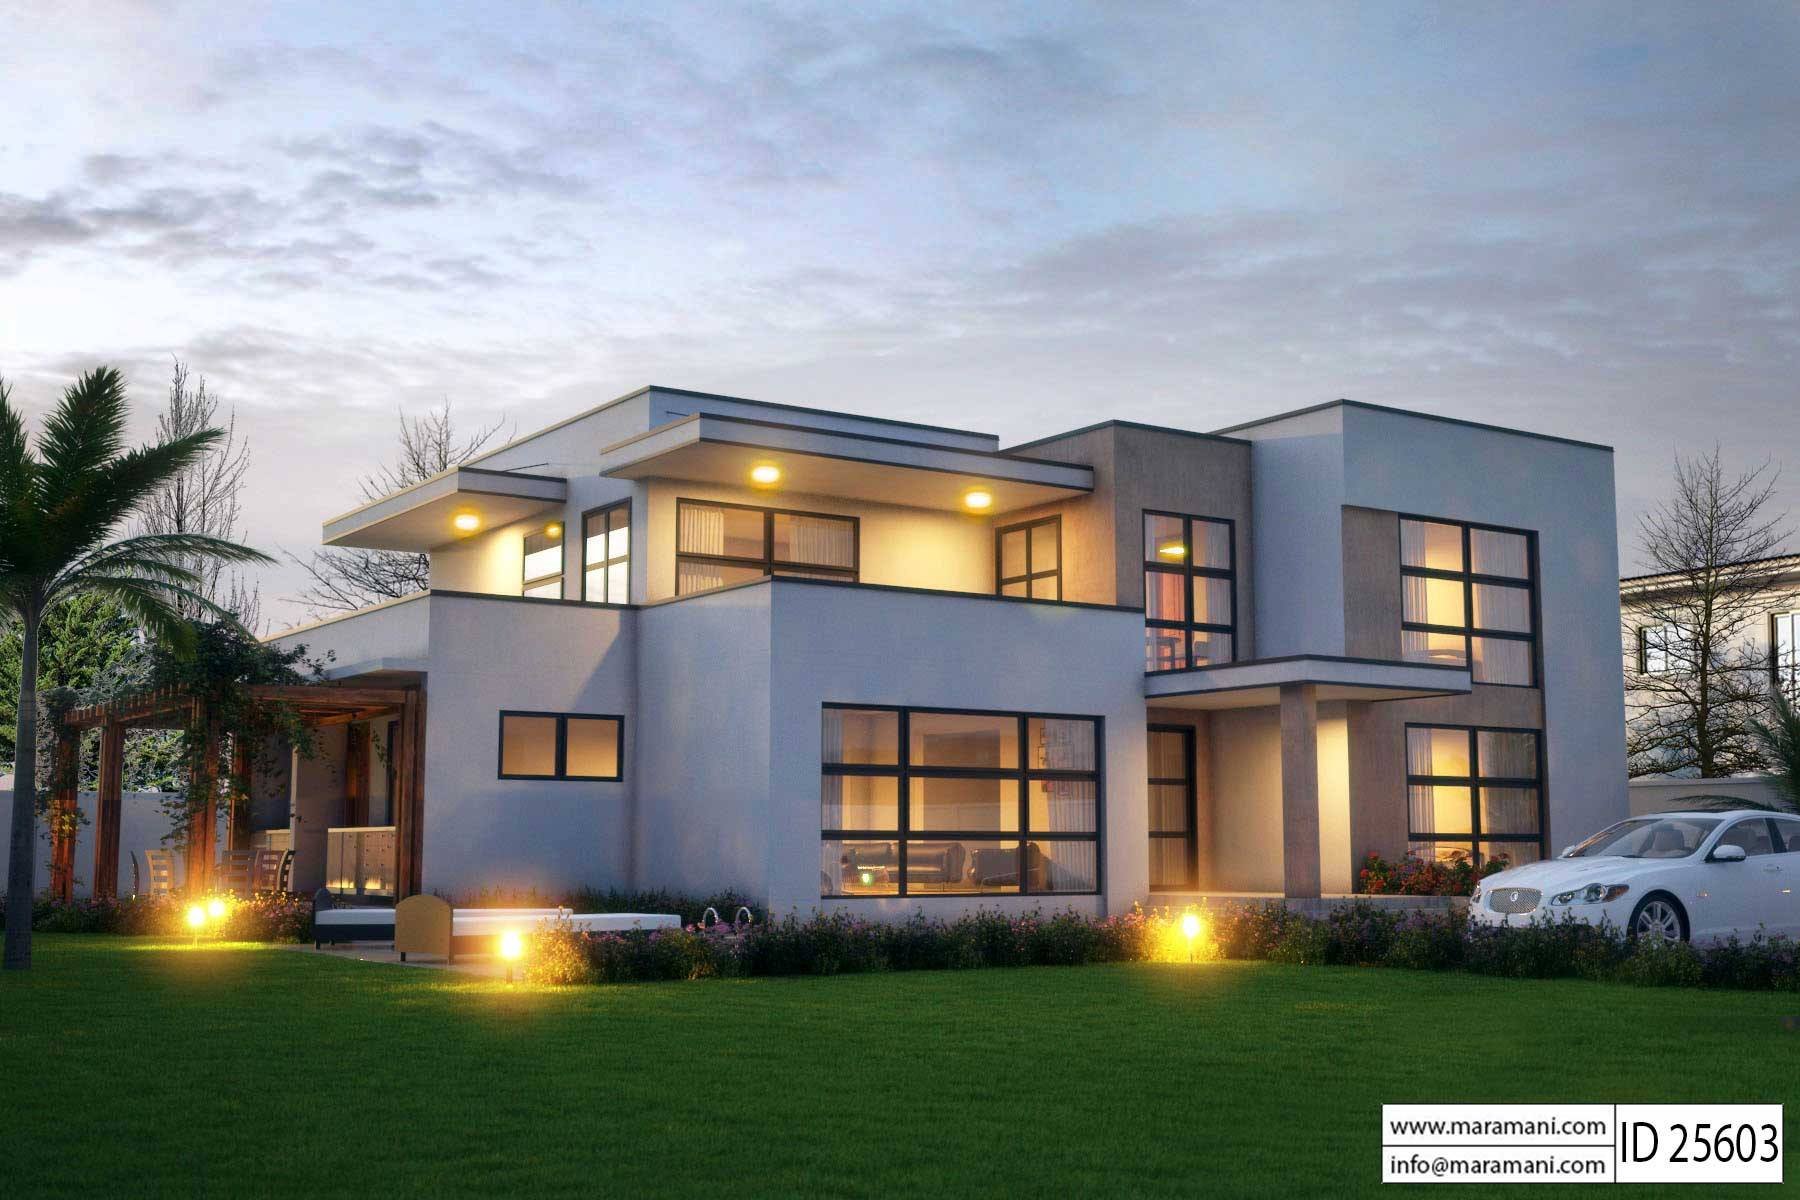 Modern 5 bedroom house design id 25603 floor plans by for From house design